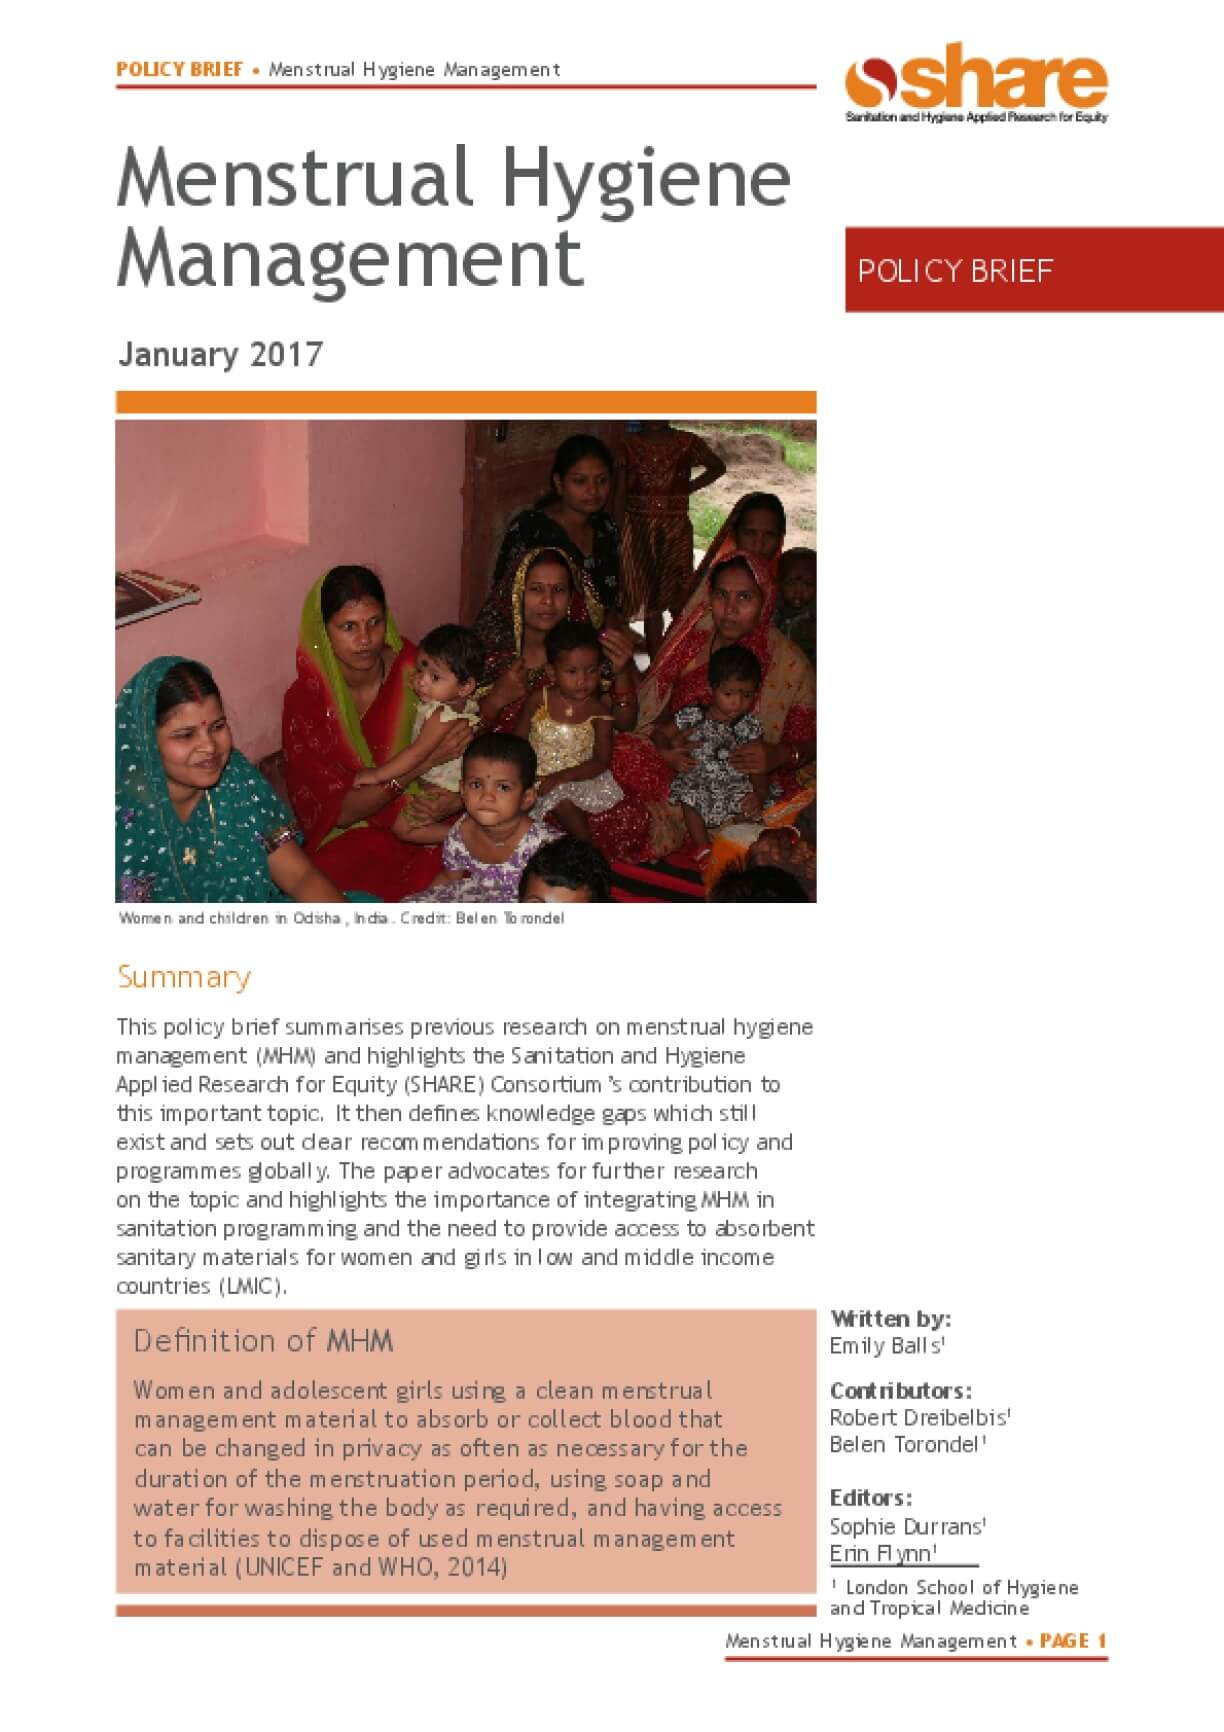 Menstrual Hygiene Management Policy Brief